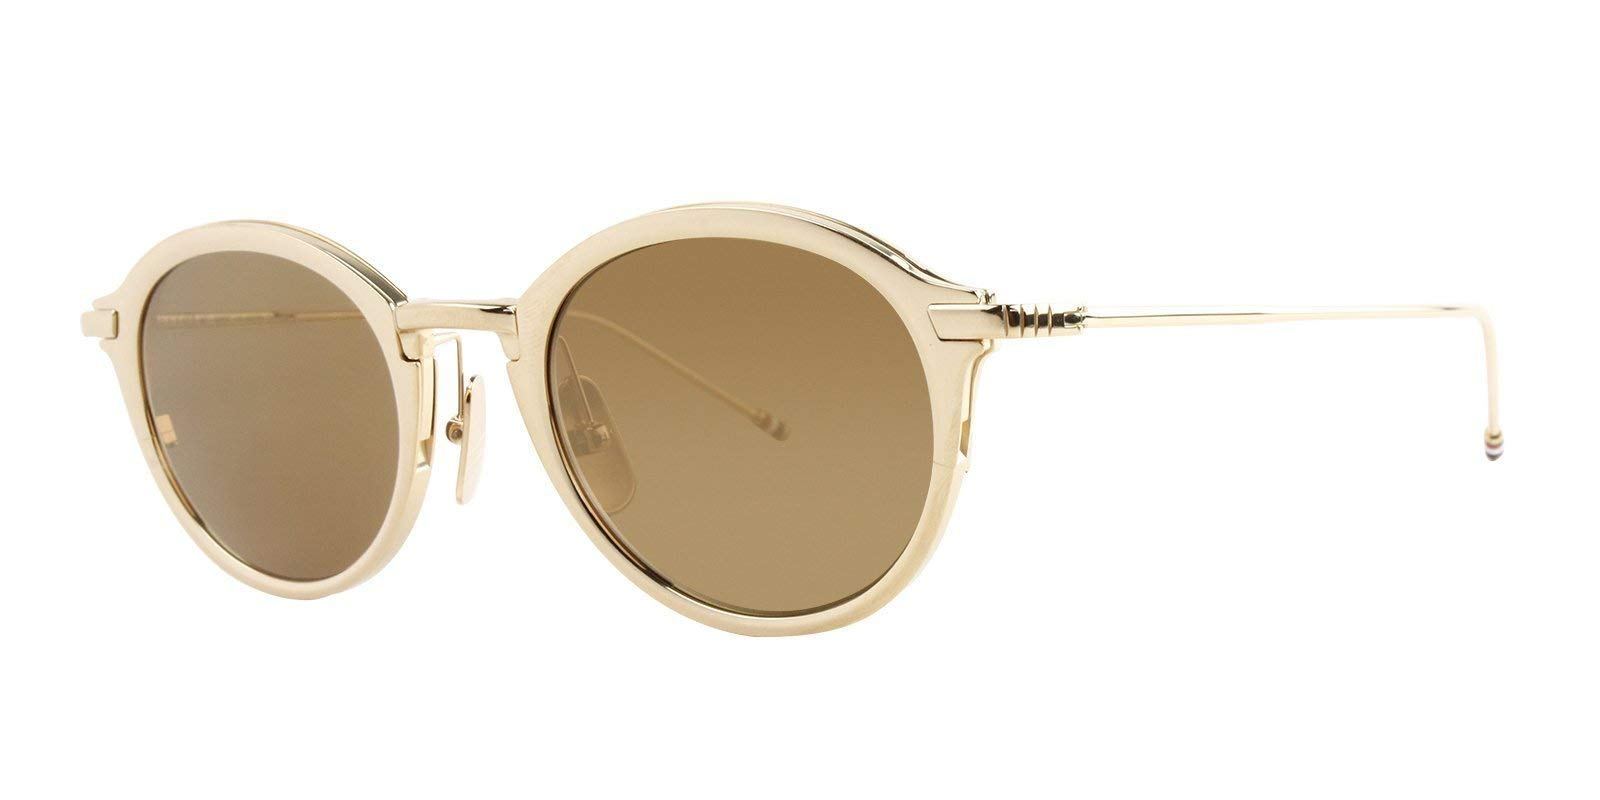 Sunglasses THOM BROWNE TB 110 C-T-GLD White Gold w/ Dark Brown-Gold Mirror-AR by Thom Browne